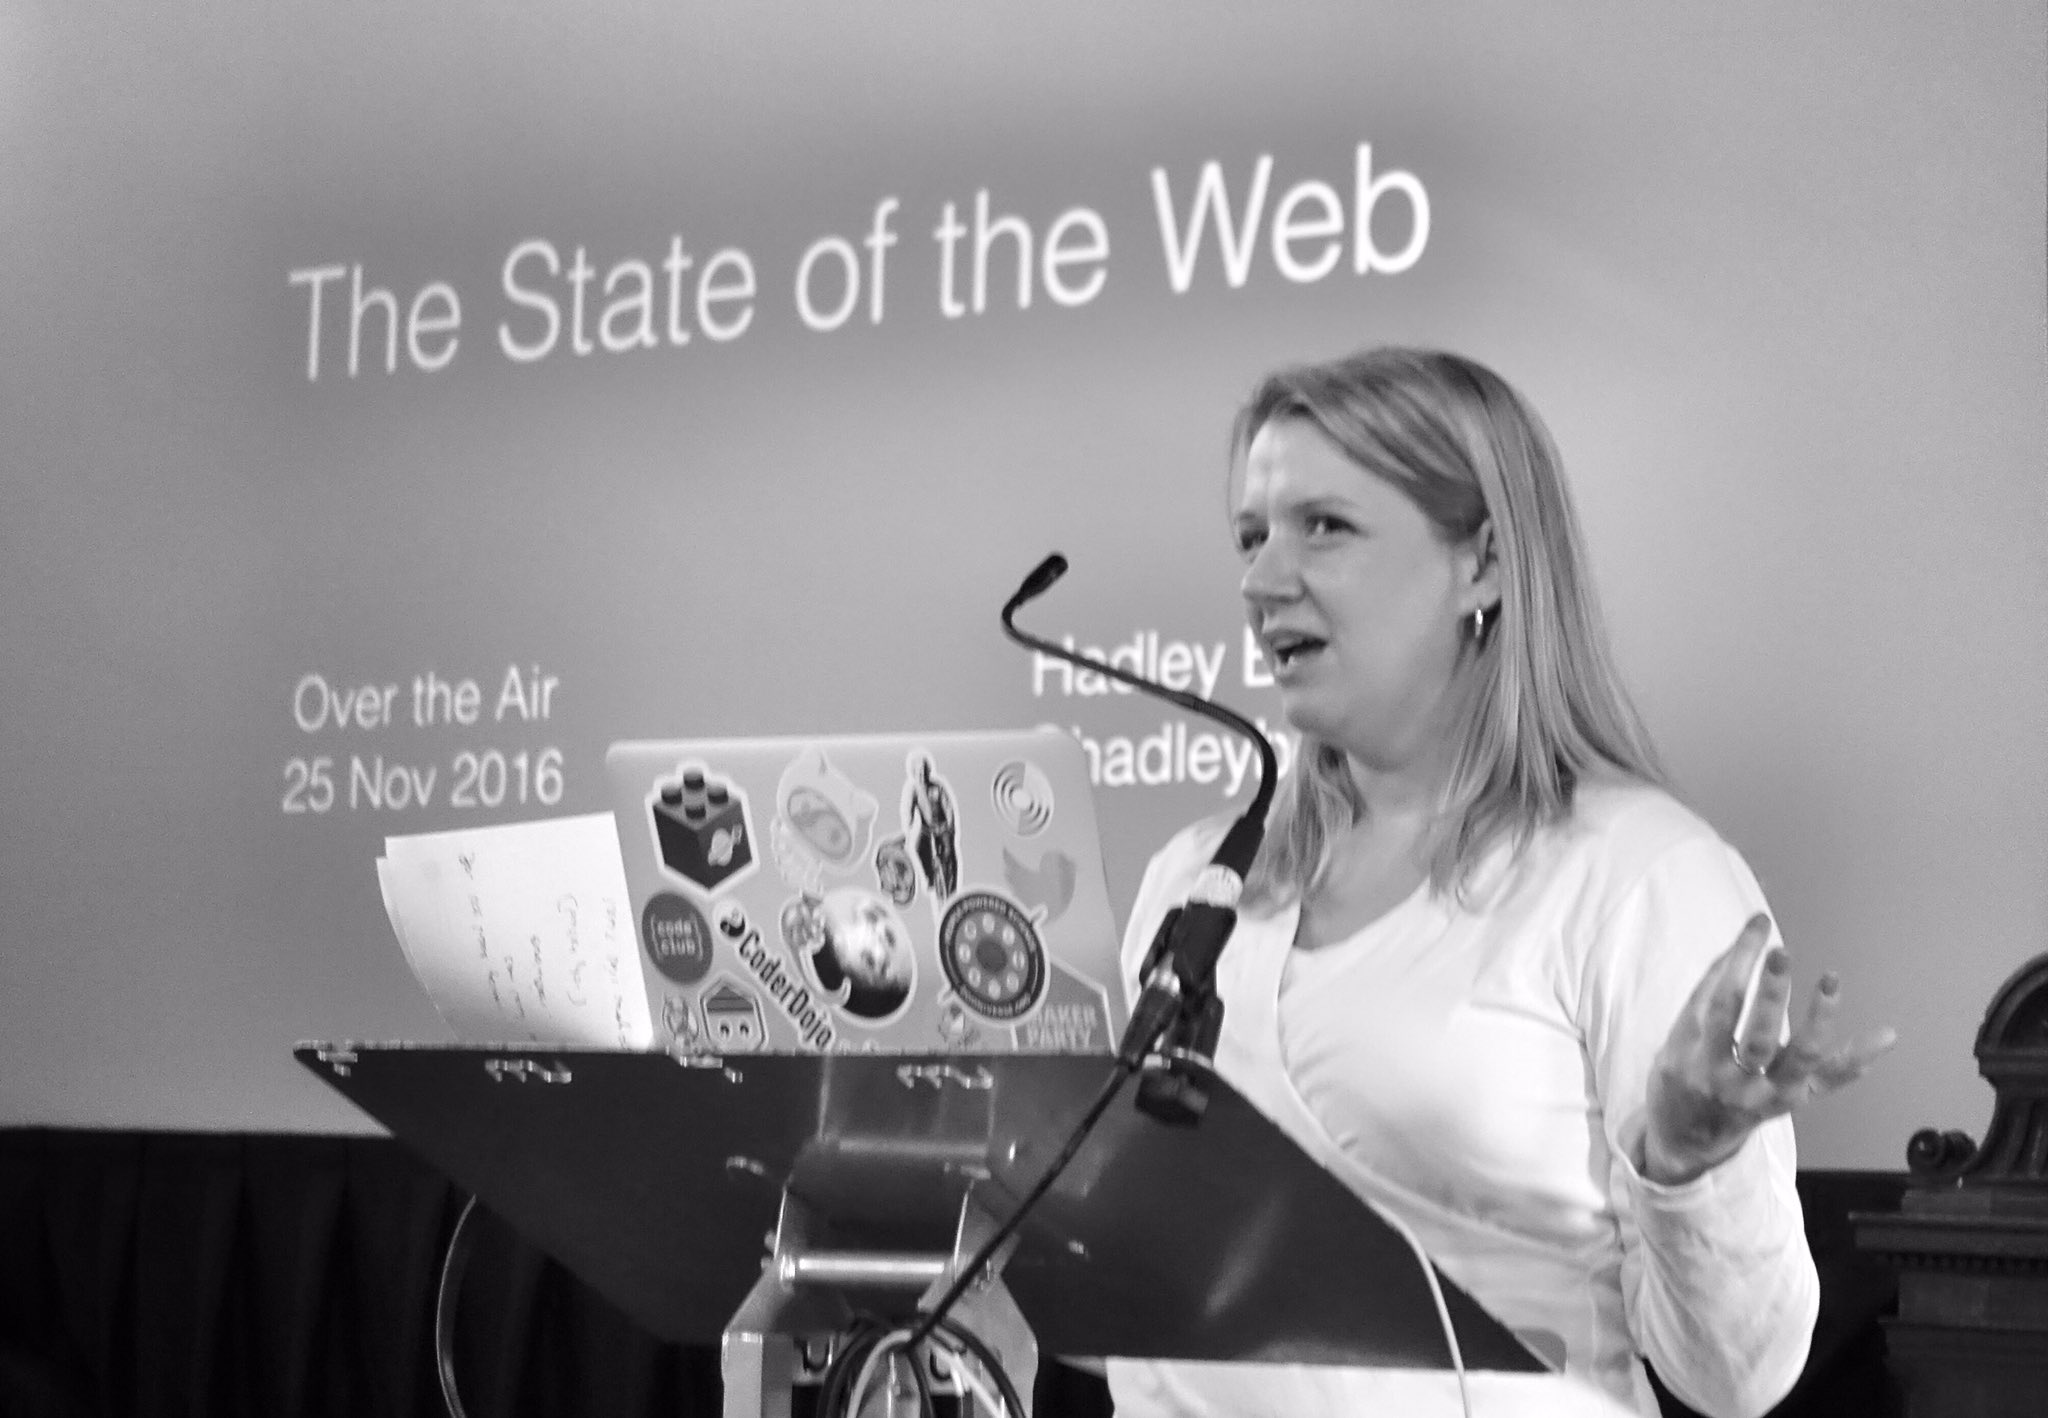 First speaker @hadleybeeman talks #brexit, Trump and what this means for devs, startups and the web. #ota16 https://t.co/RAIMP7ceE0